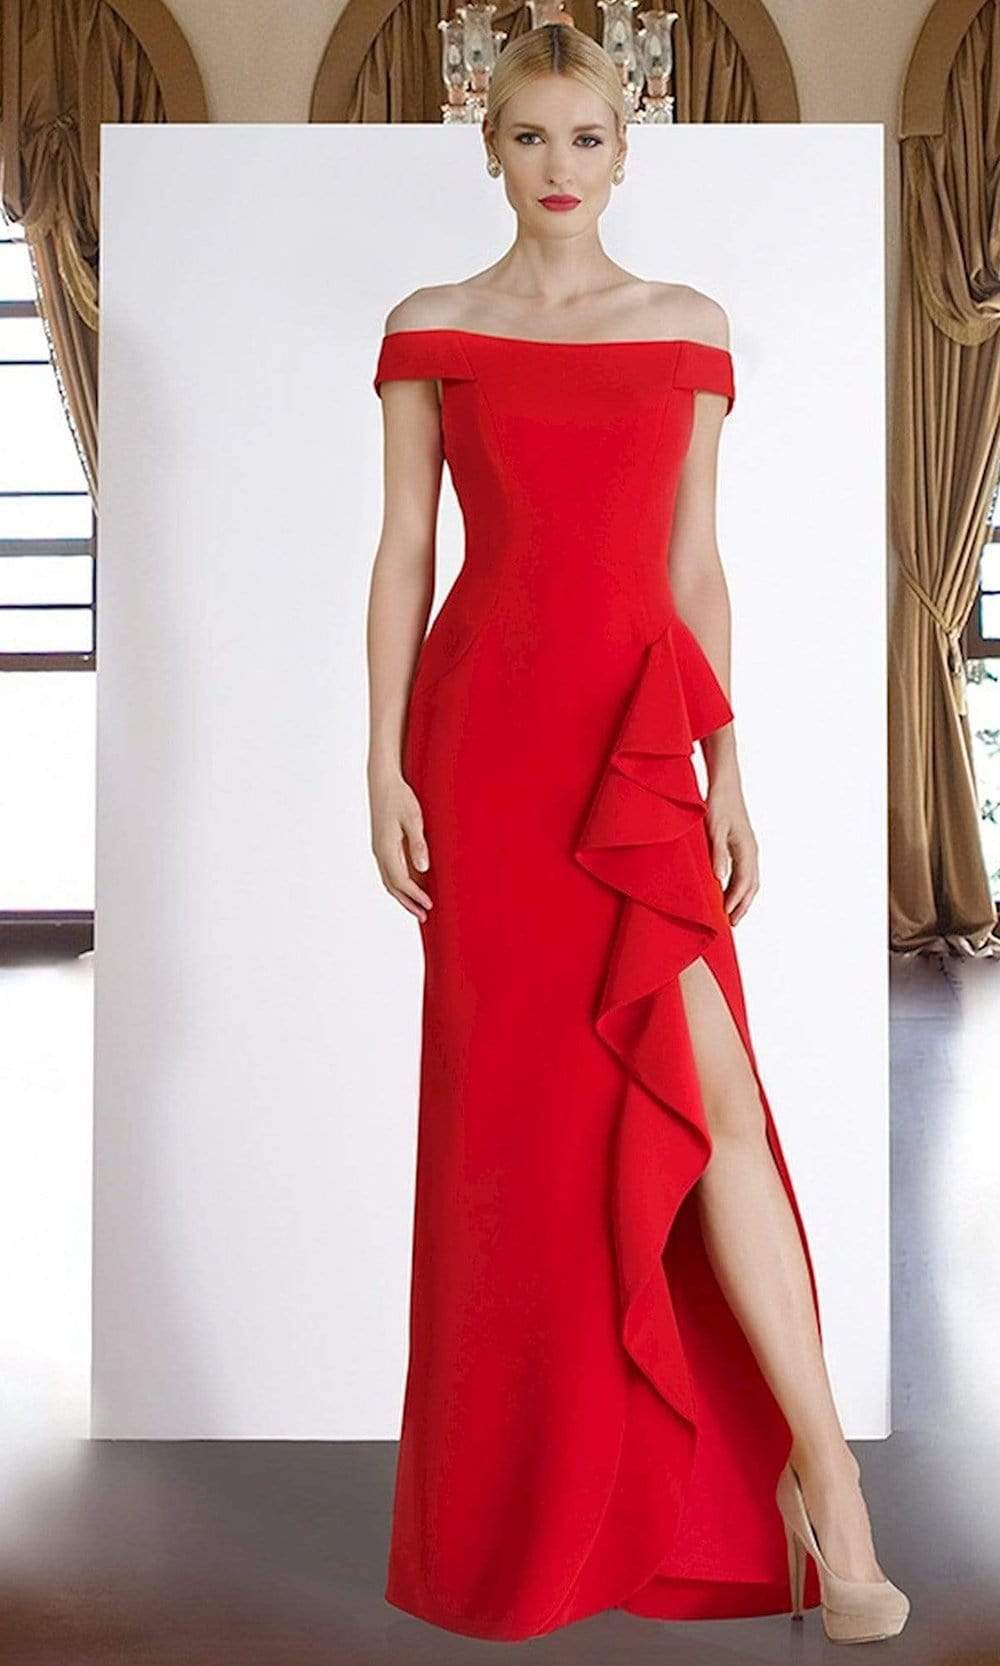 Janique - C1870 Ruffled Off-Shoulder Sheath Dress In Red from Janique